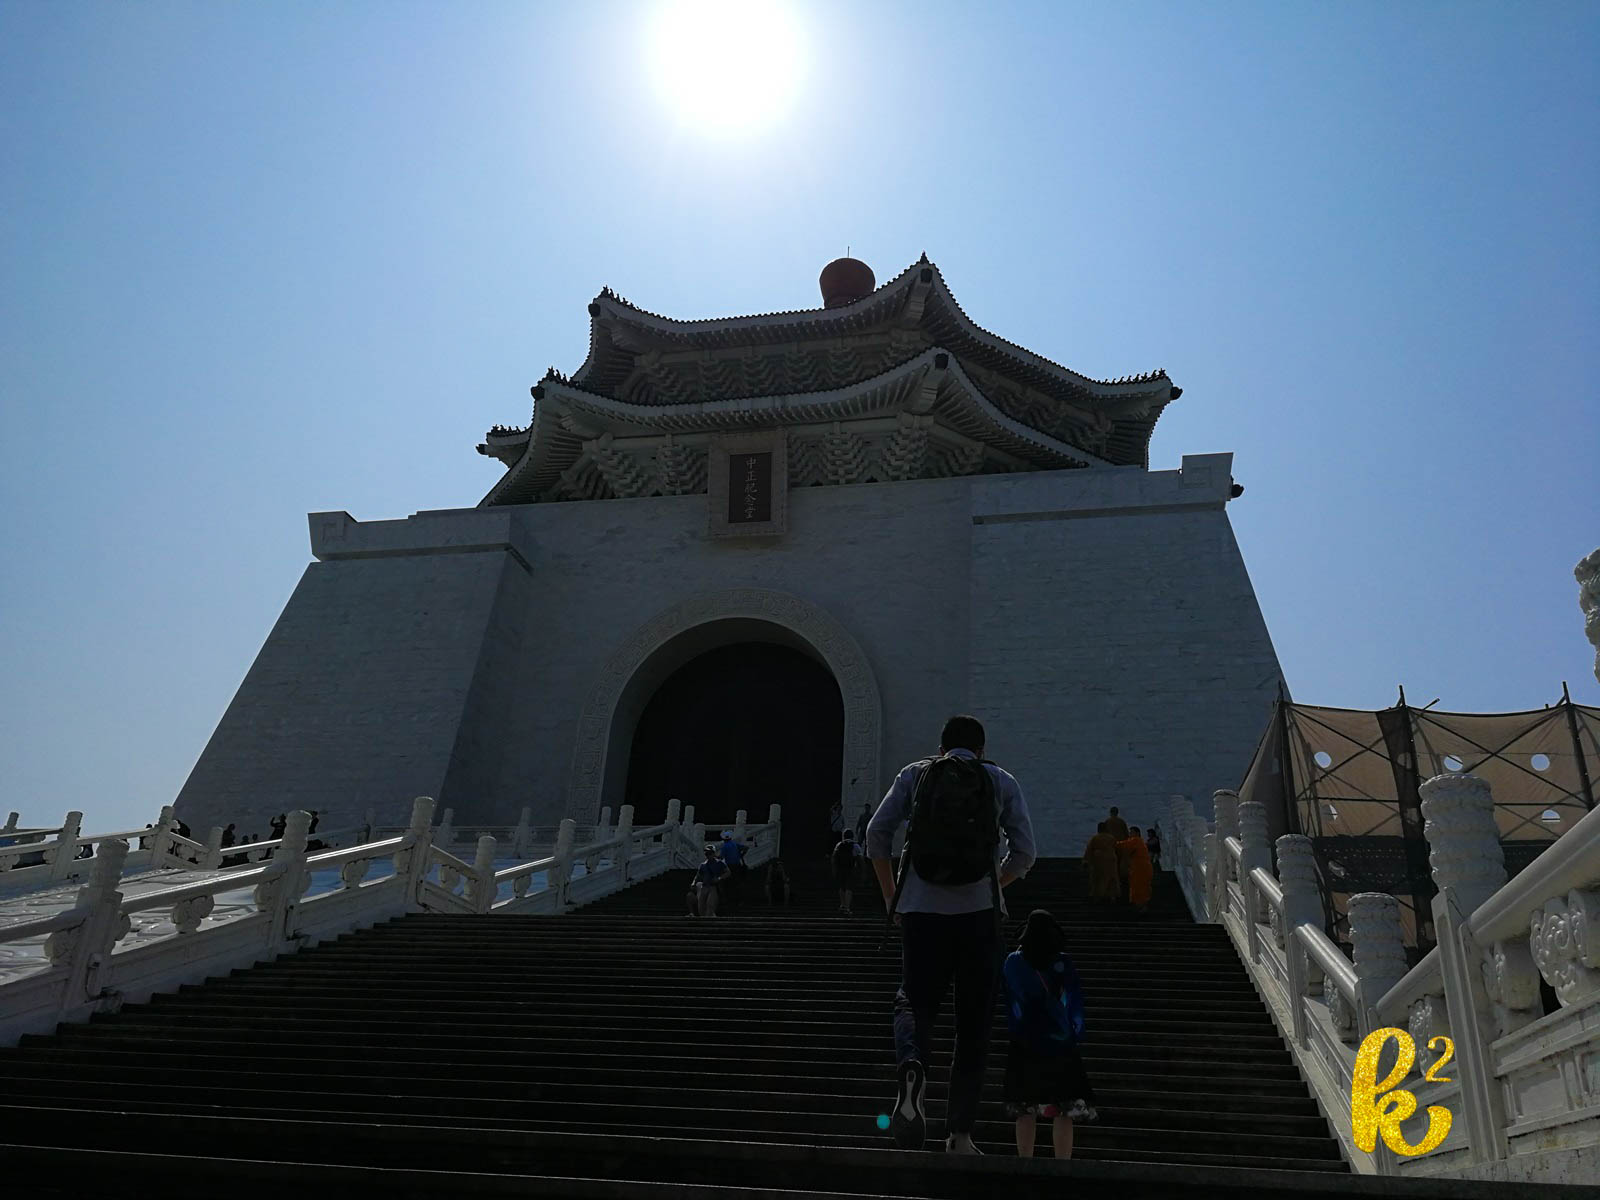 taiwan, travel, places to visit in taiwan, taiwan tourism, taiwan travel, chiang kai-shek memorial